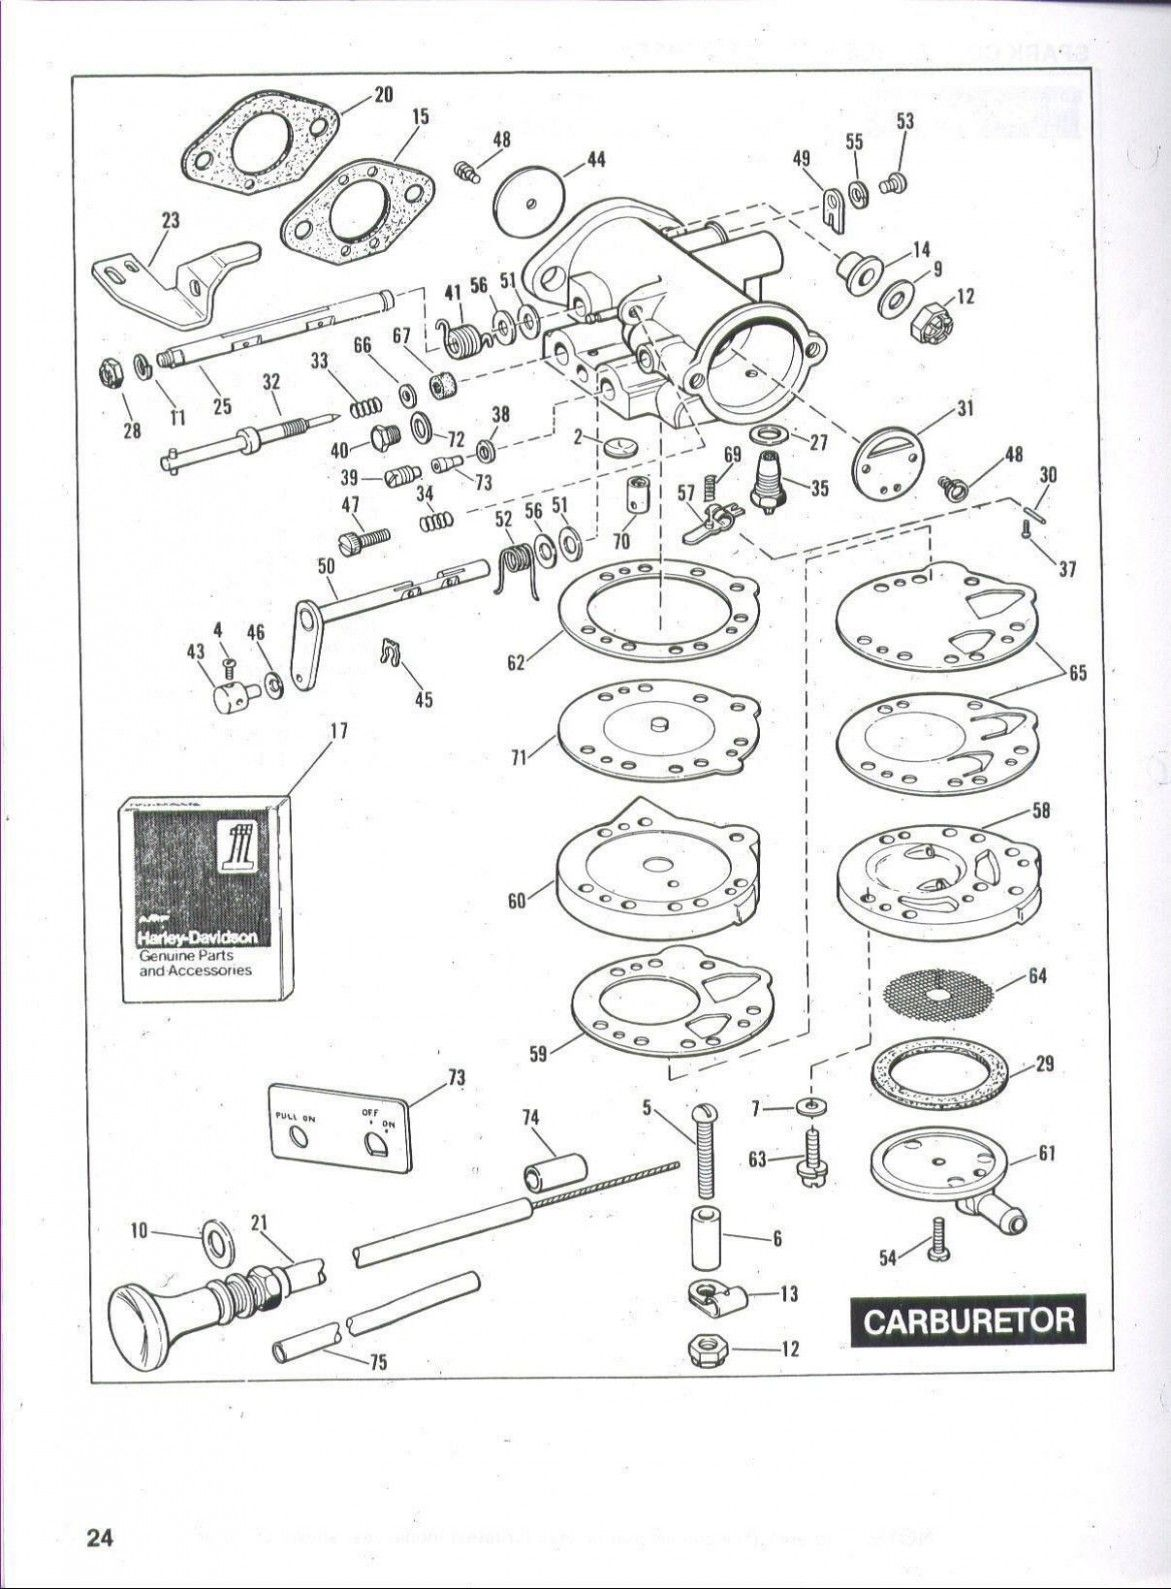 Yamaha Golf Cart Engine Parts Diagram In 2020 Yamaha Golf Carts Golf Carts Off Road Golf Cart